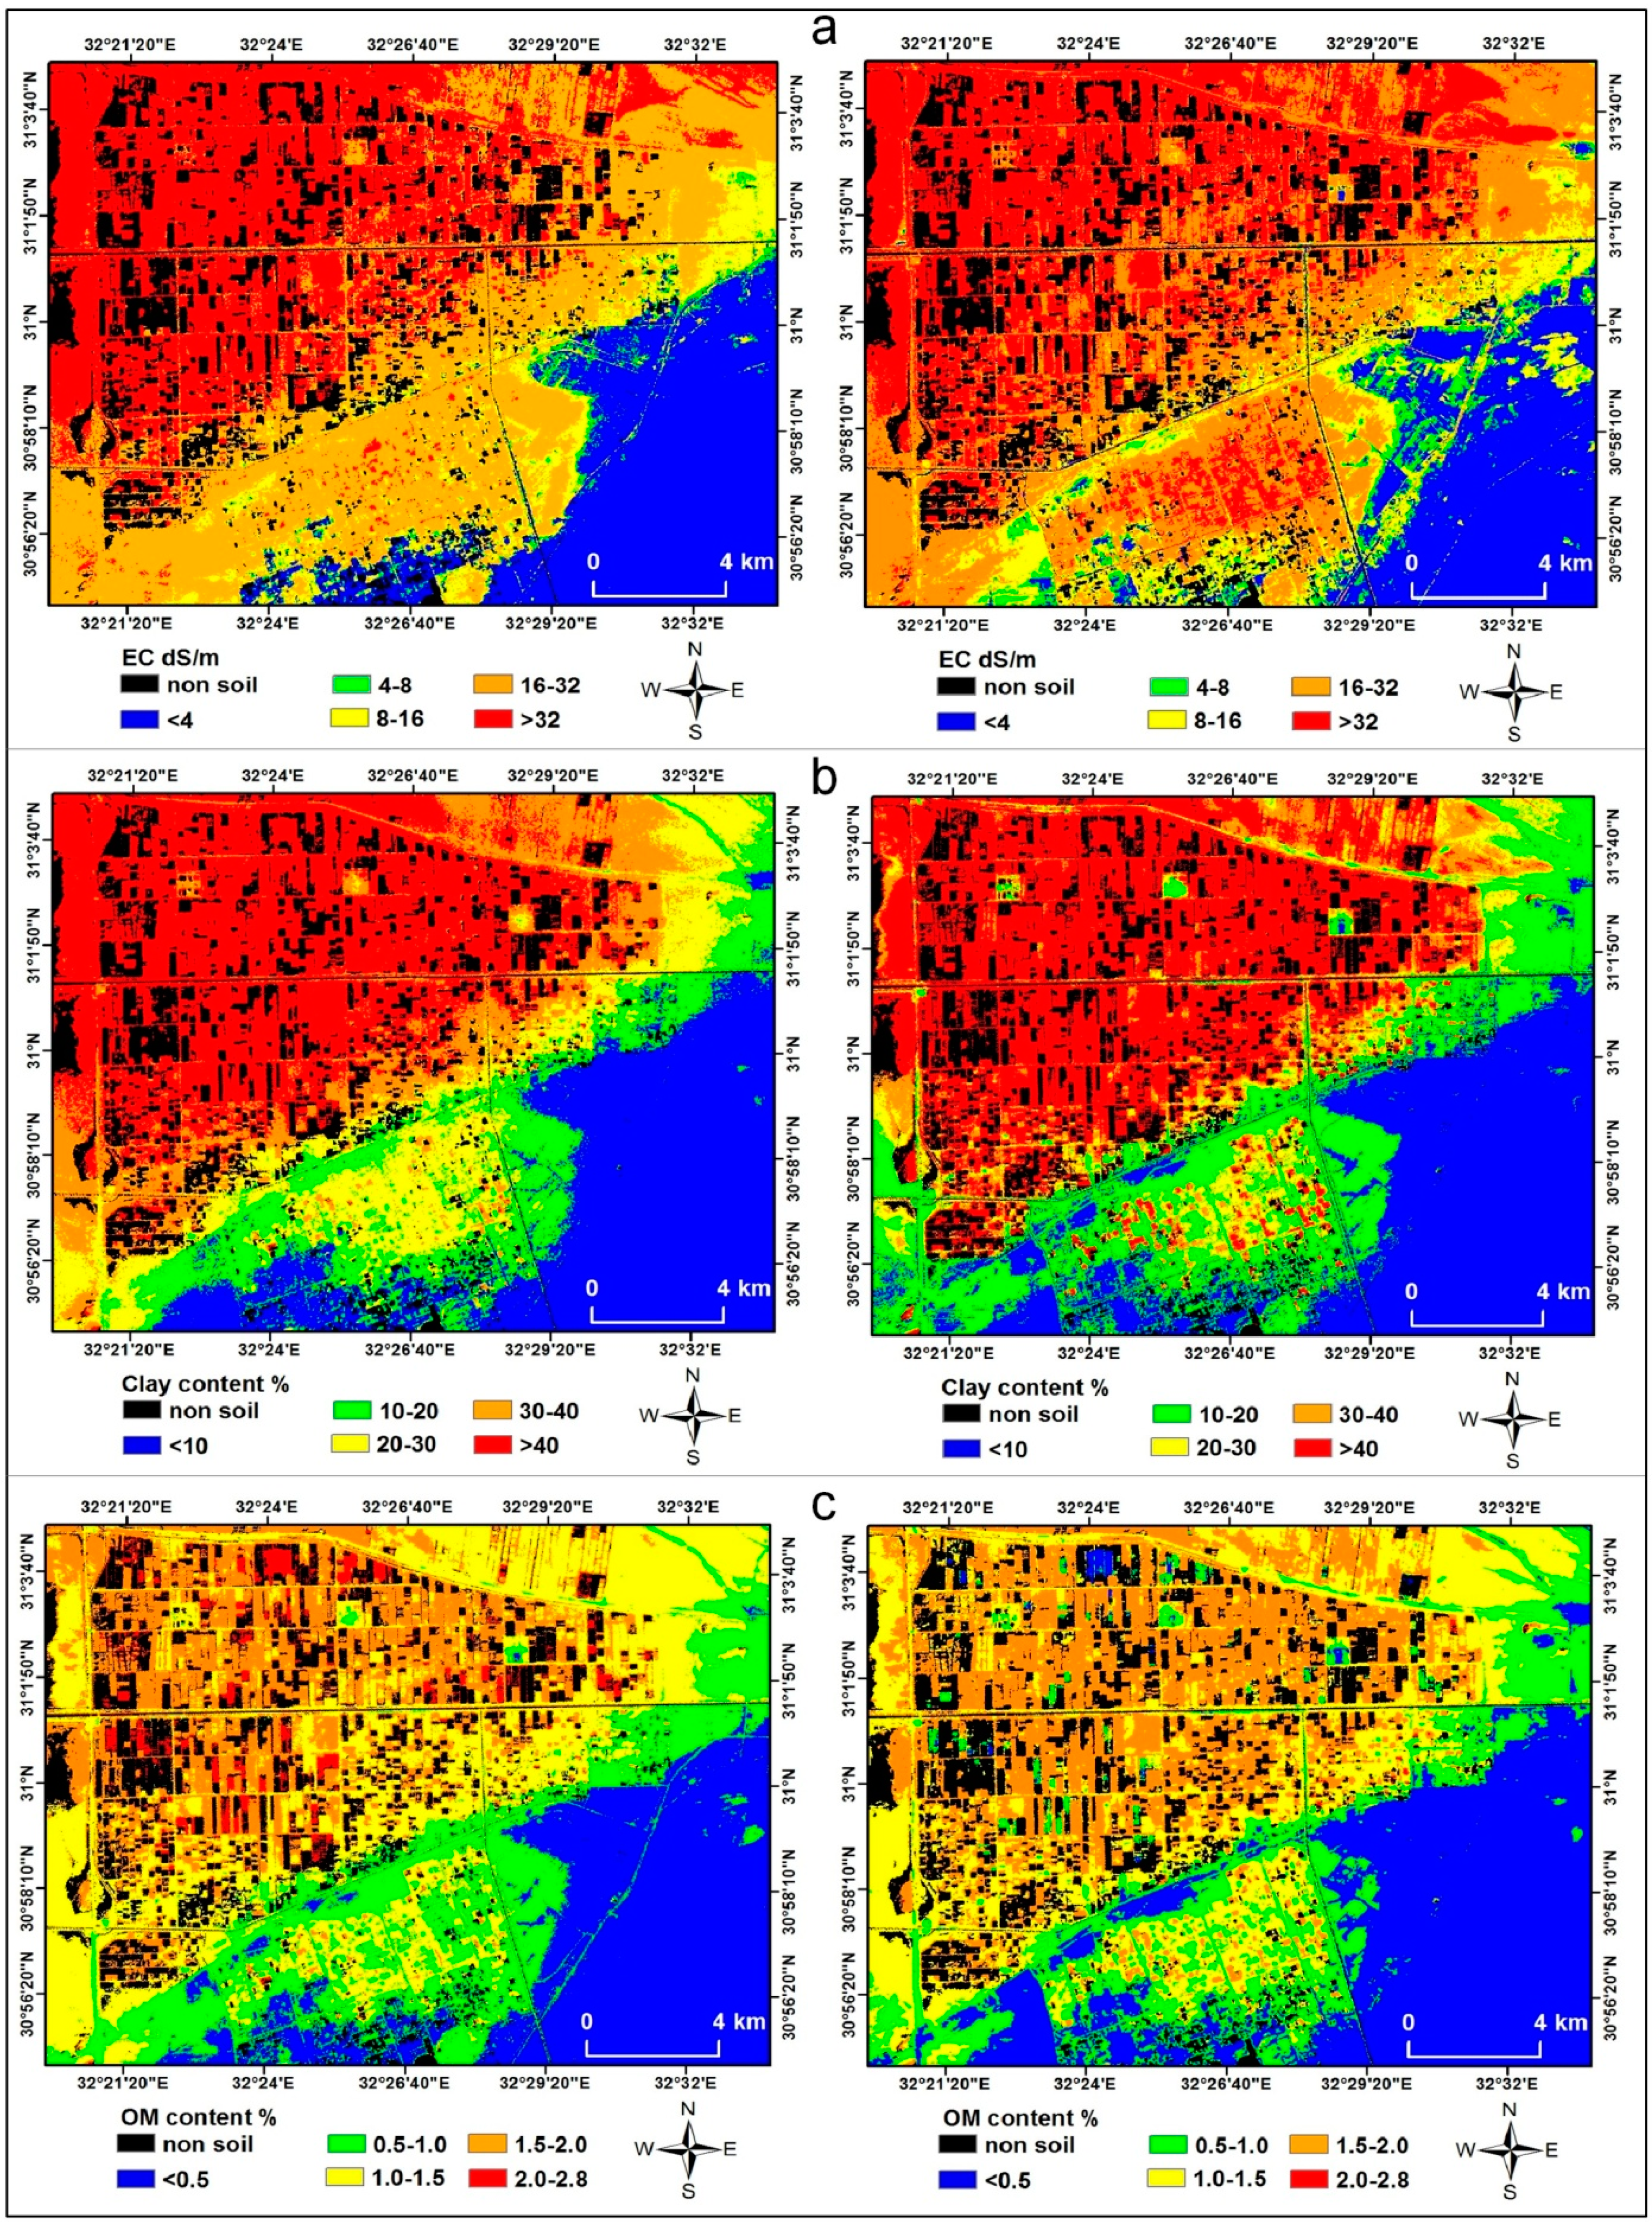 remotesensing-07-01181-g007 Electrical Mapping on